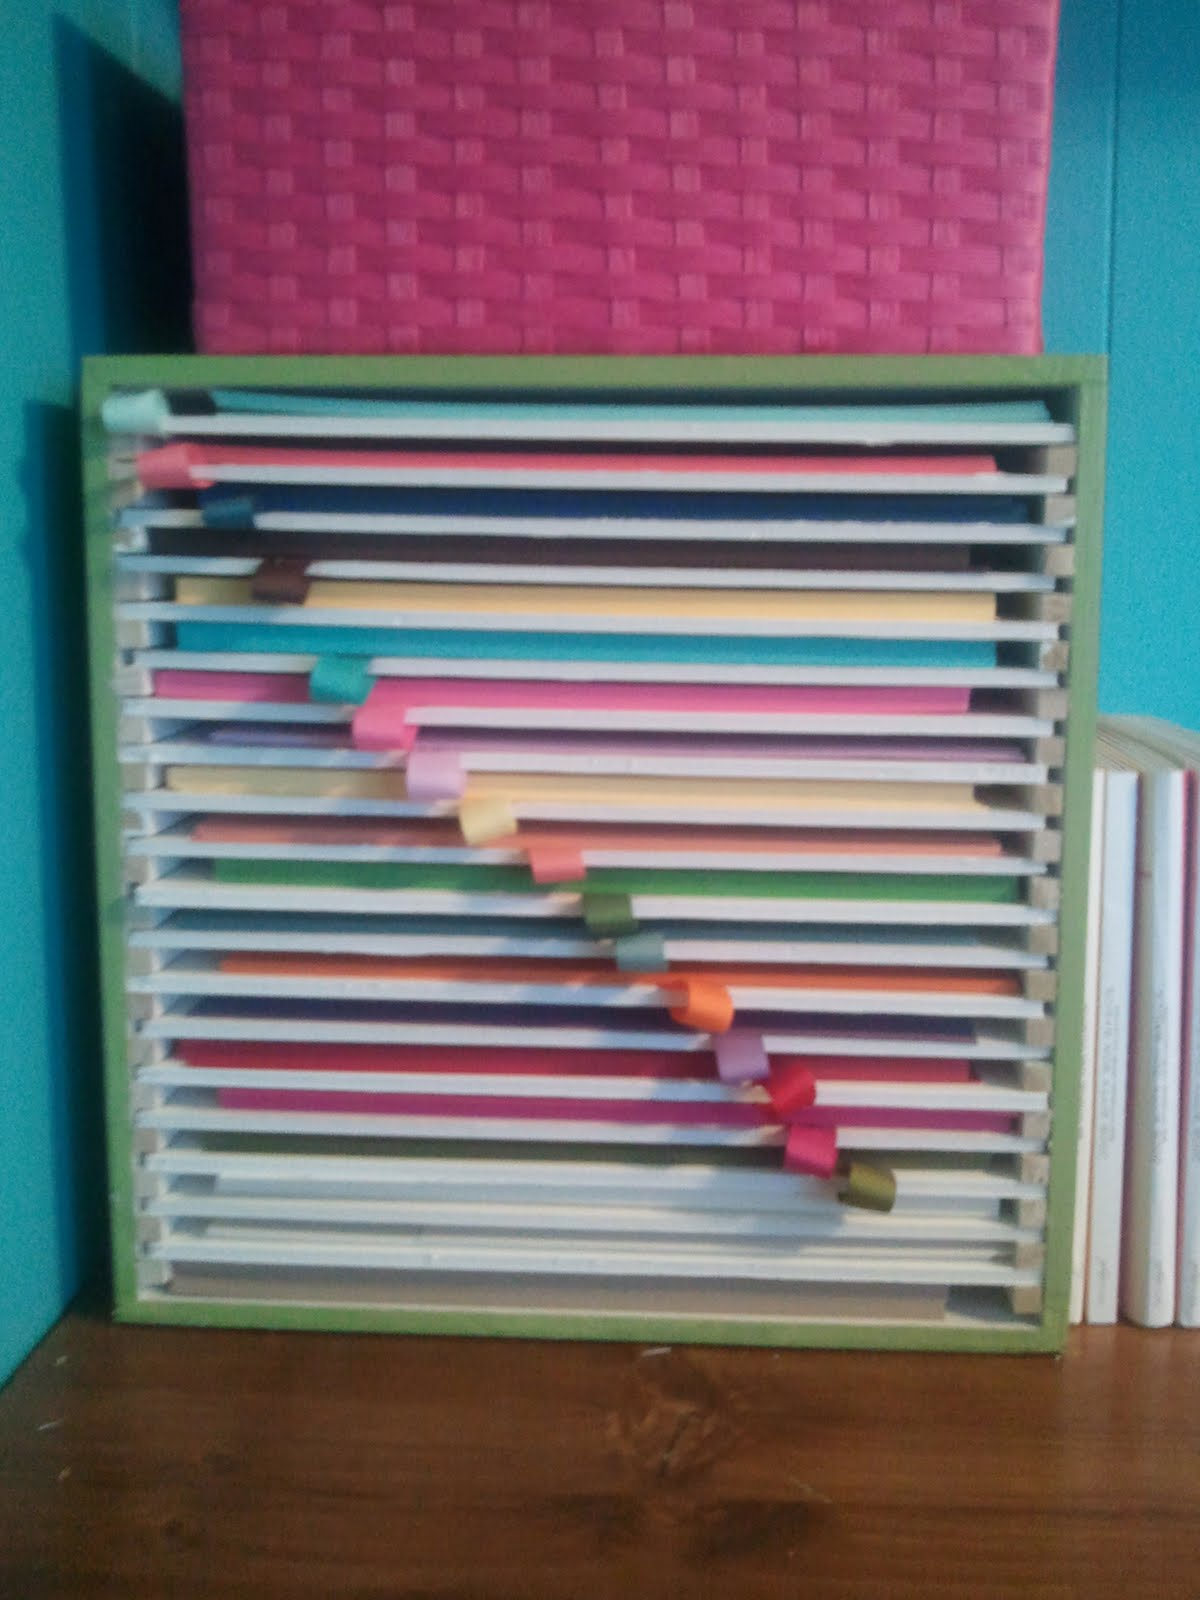 Crafty storage amy 39 s awesome paper storage idea for Craft paper storage ideas